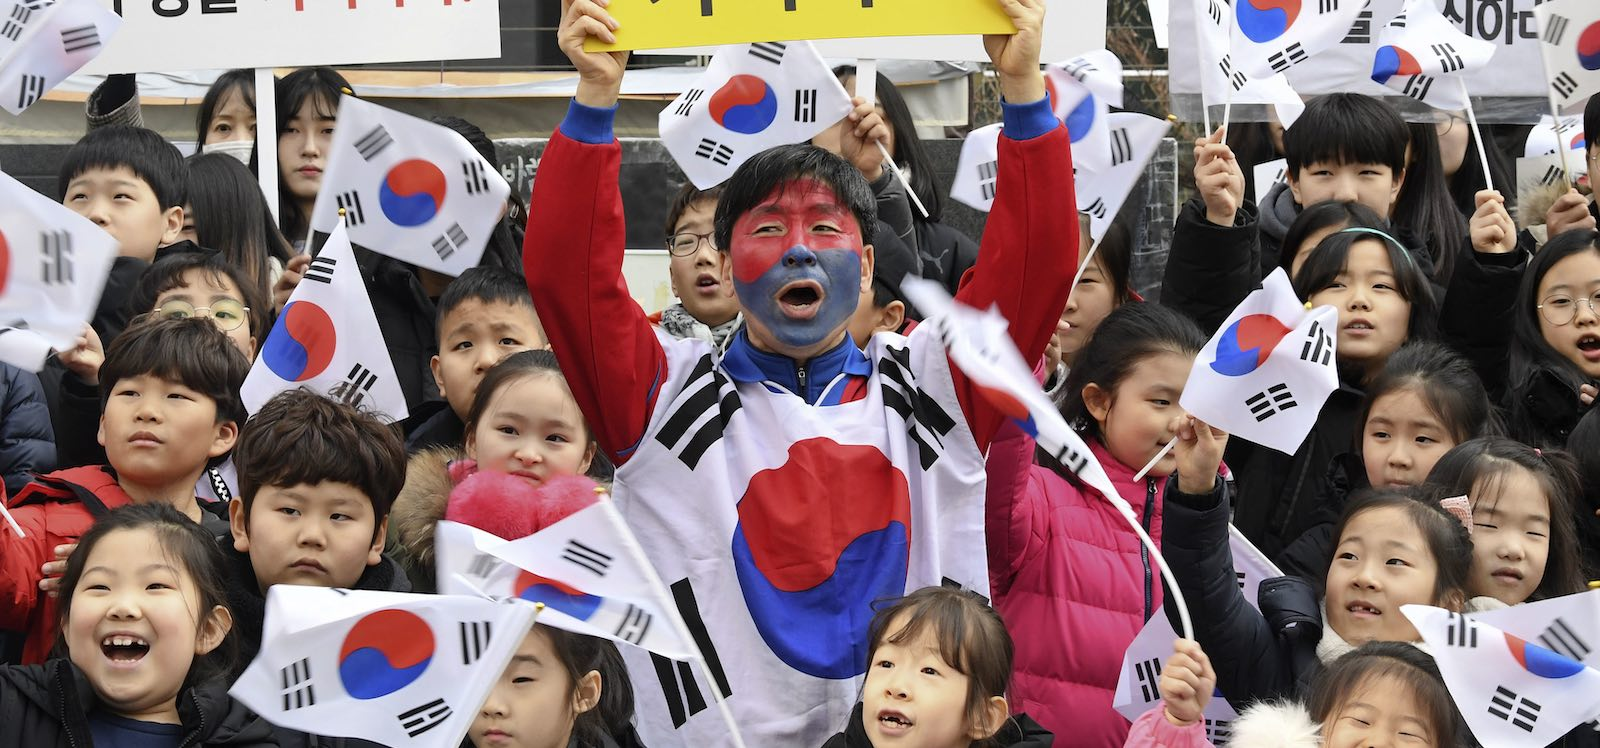 Demonstrations outside the Japanese embassy, Seoul, in February (Photo: Kyodo News via Getty)